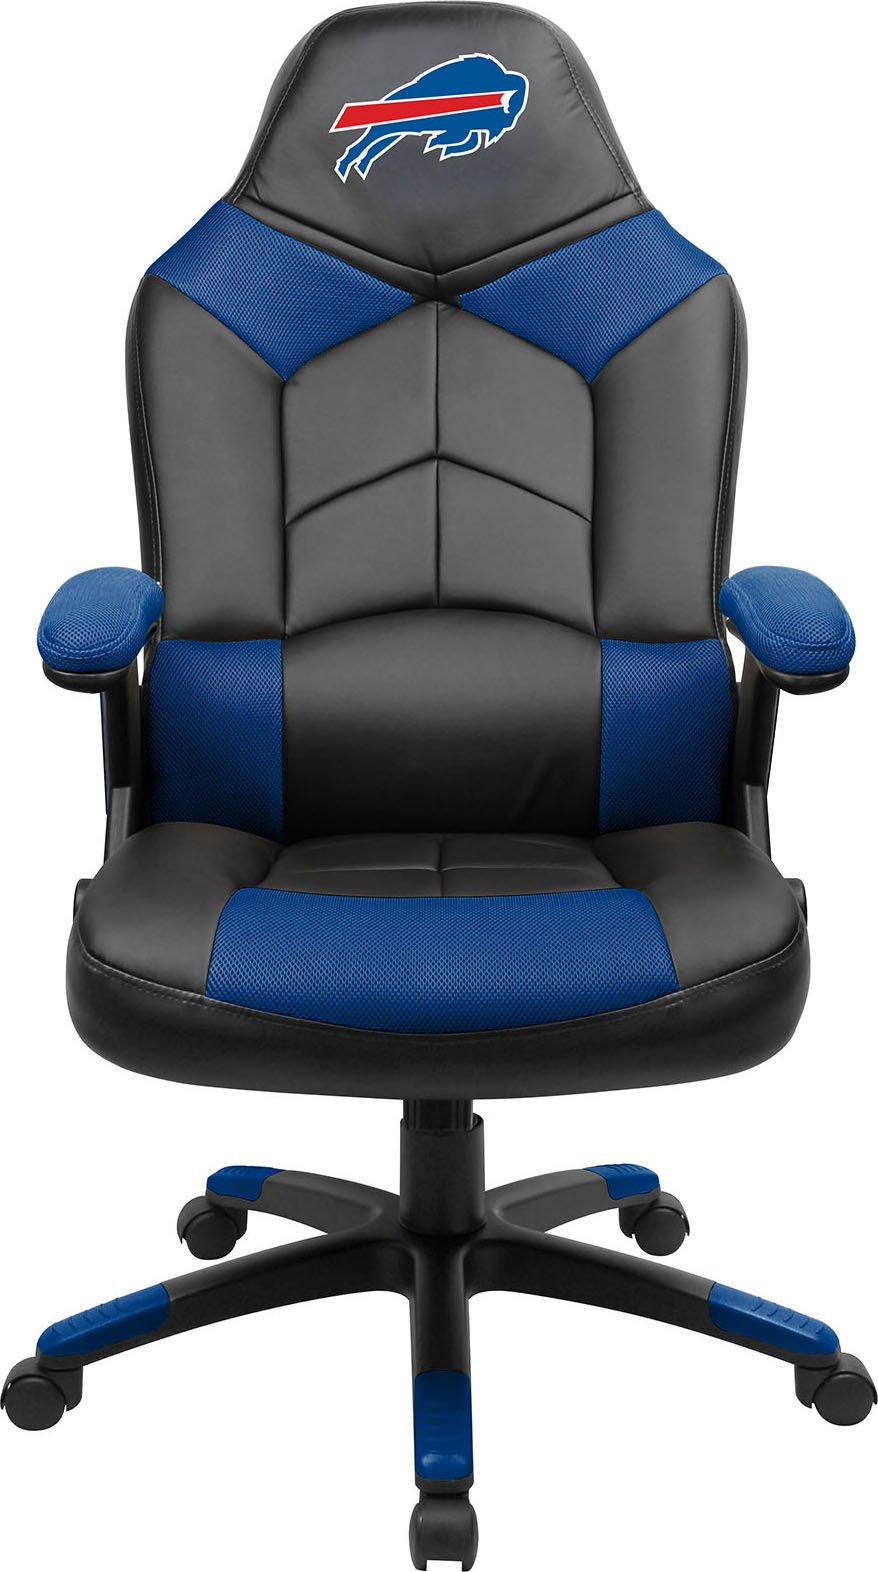 Imperial Officially Licensed NFL Furniture; Oversized Gaming Chairs, Buffalo Bills